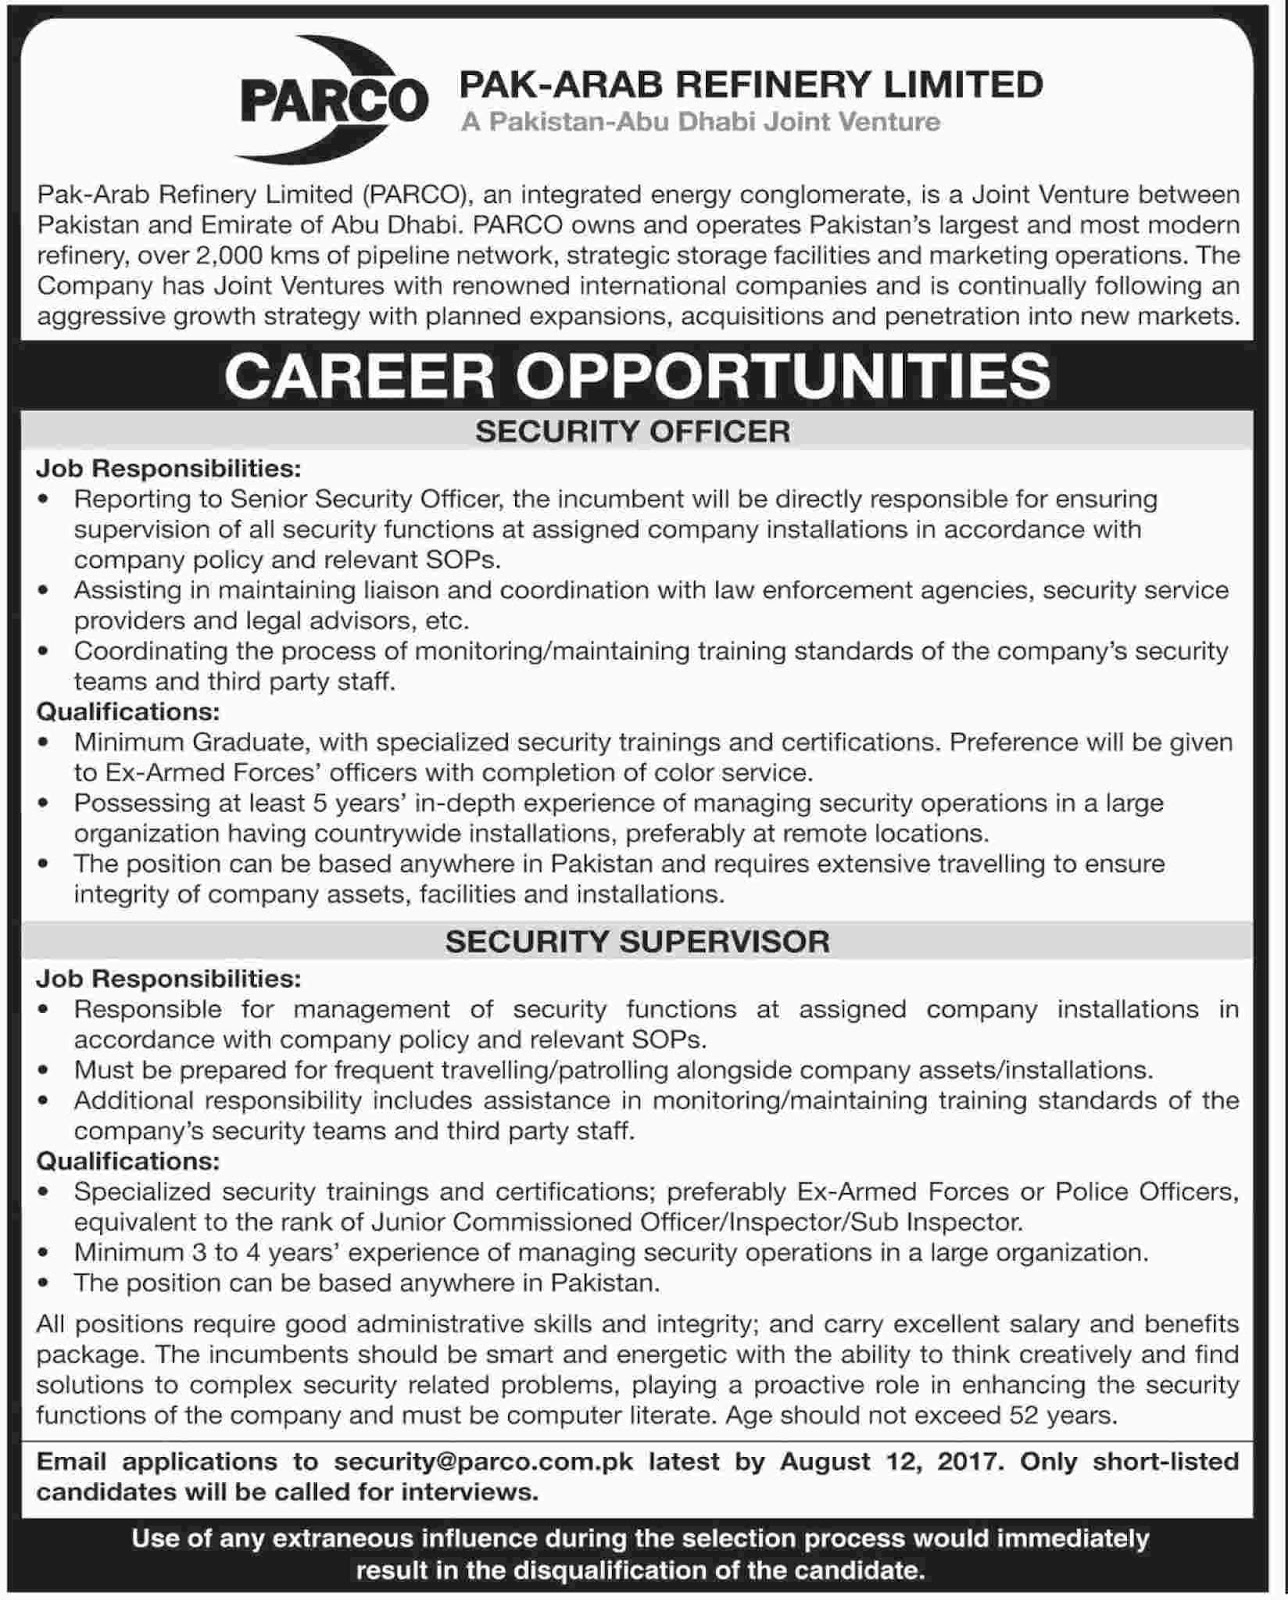 Pak Arab Refinery Limited (PARCO) Job  31 July 2017.